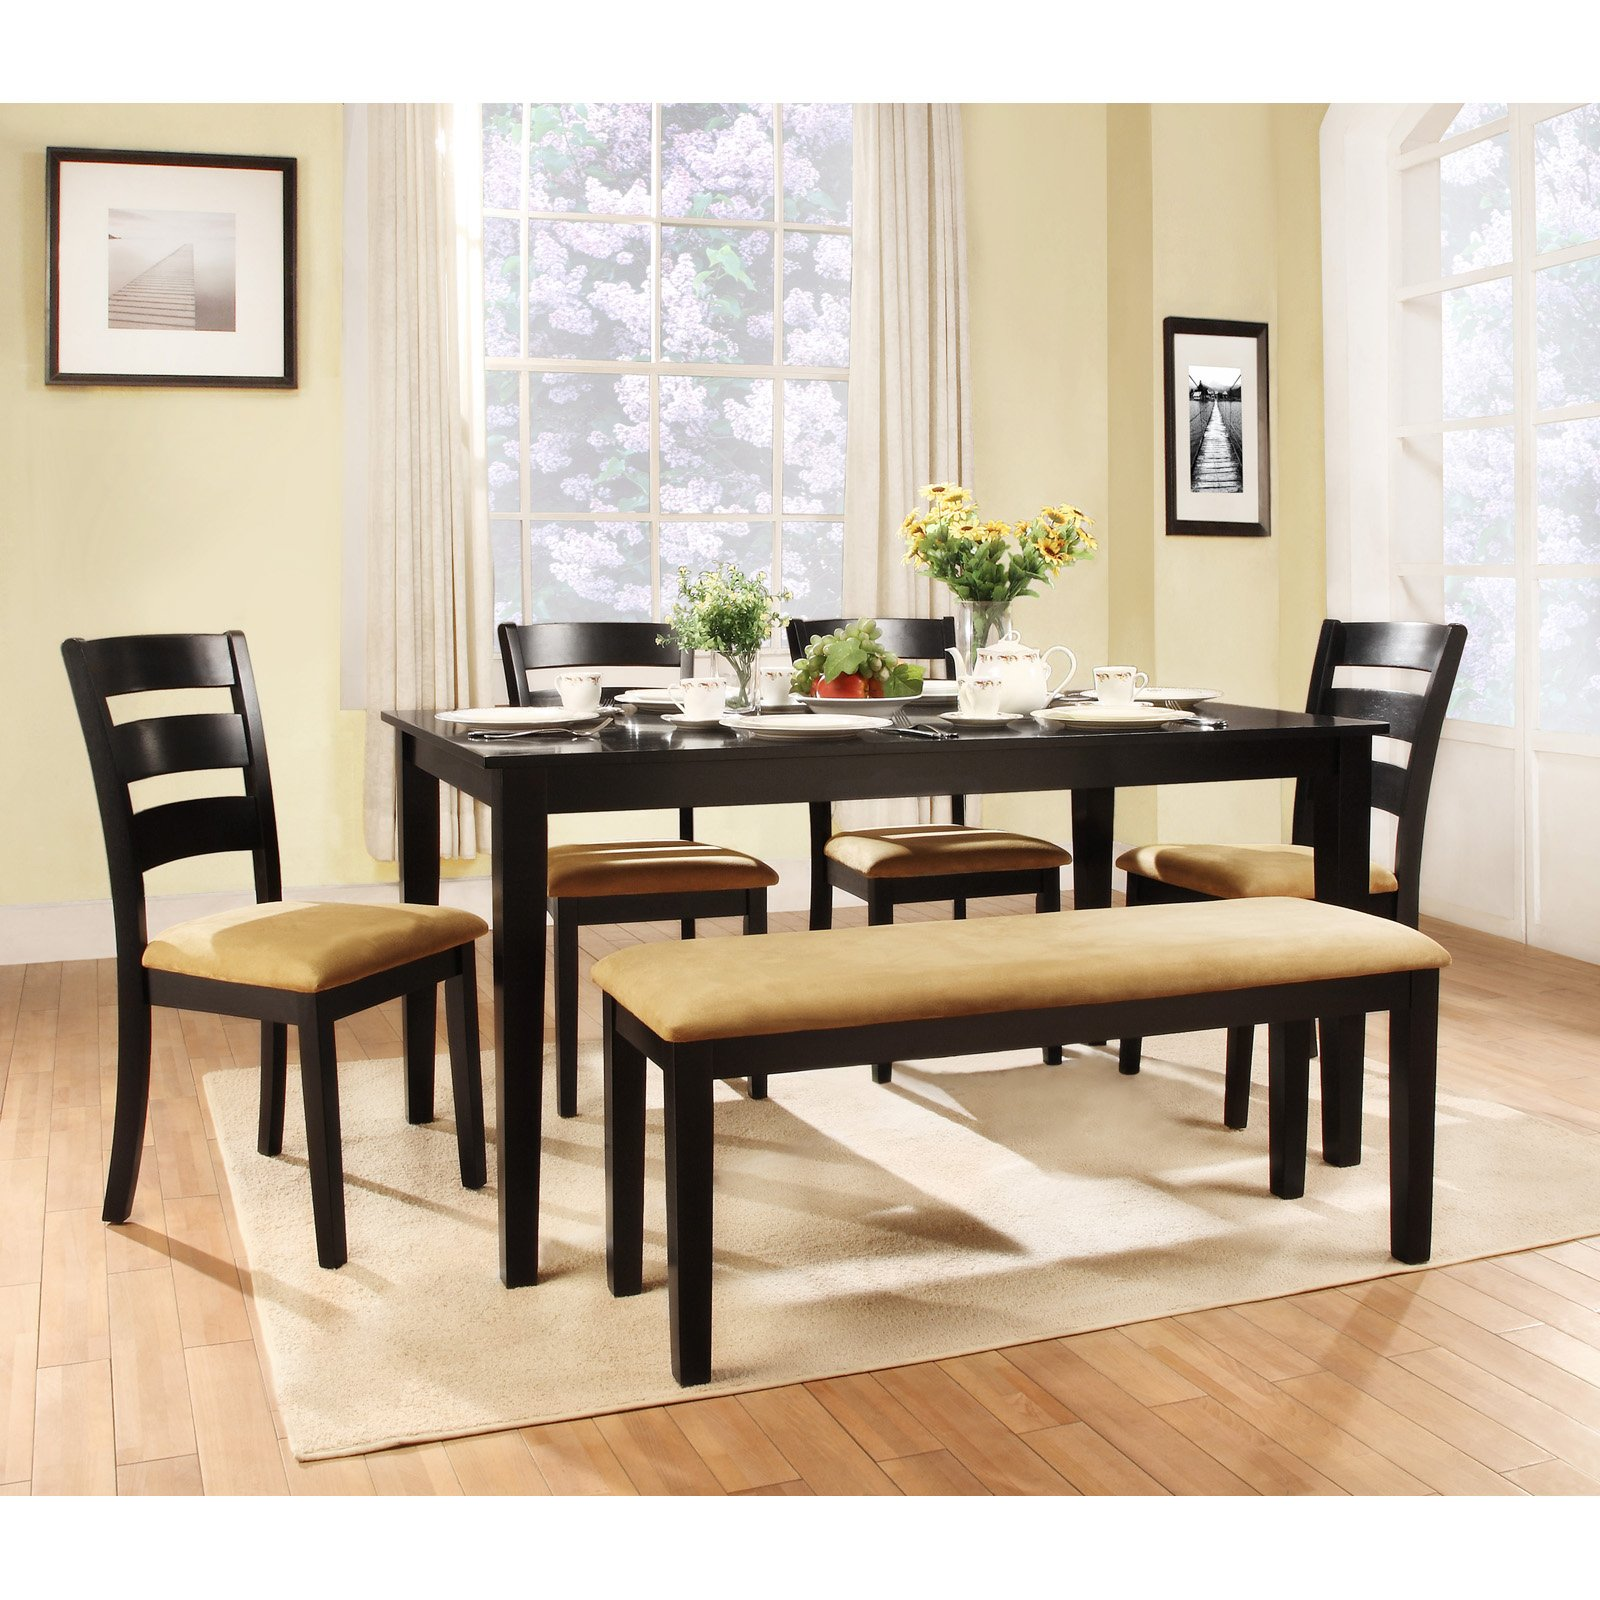 Modern Bench Style Dining Table Set Ideas HomesFeed Beautiful